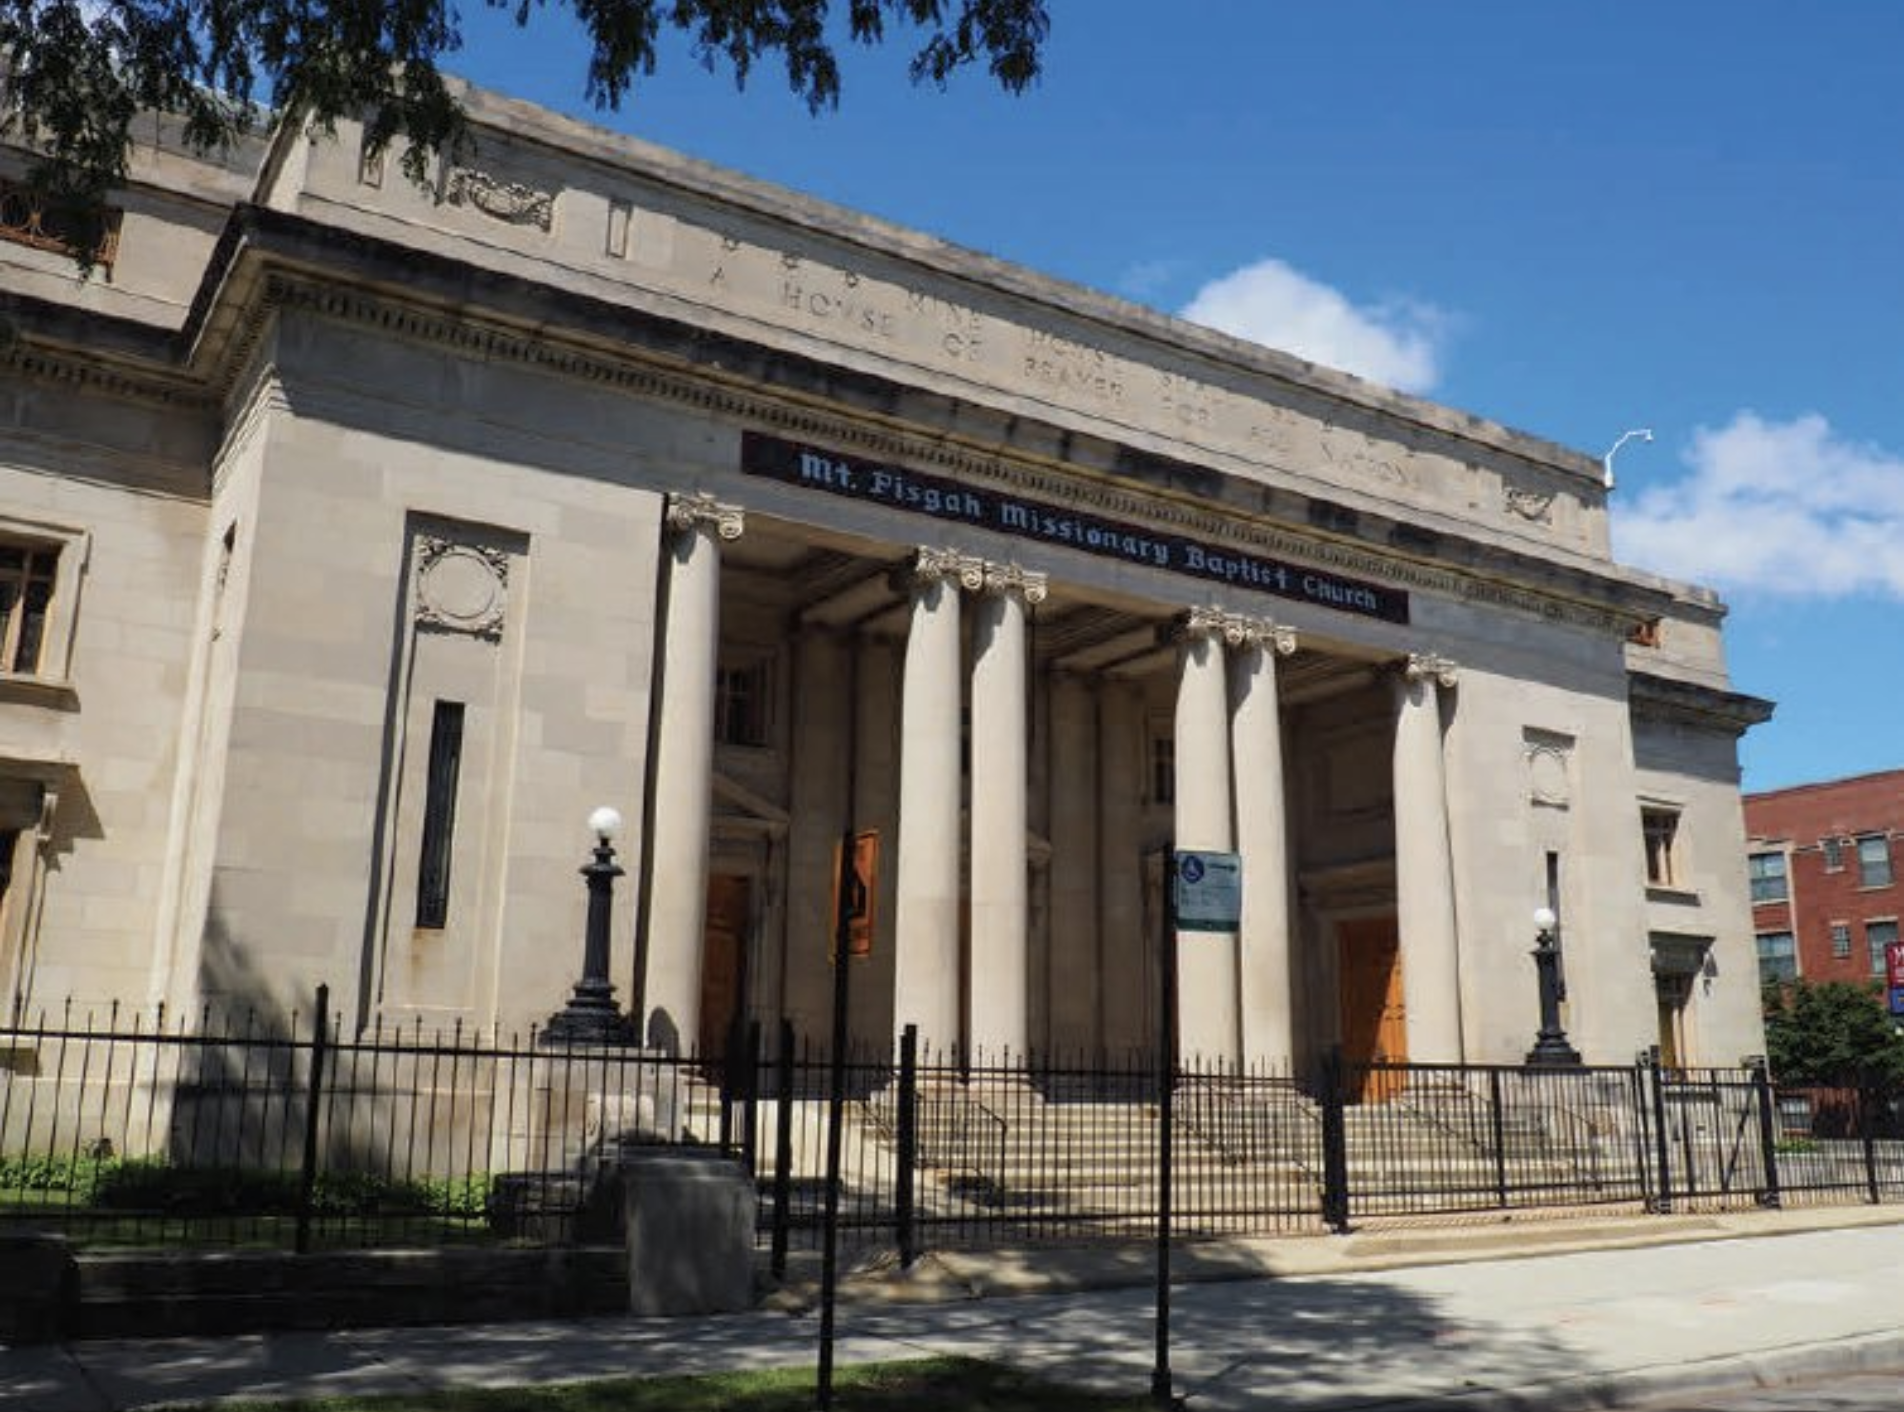 A photo of a large stone building with exterior columns and steps.